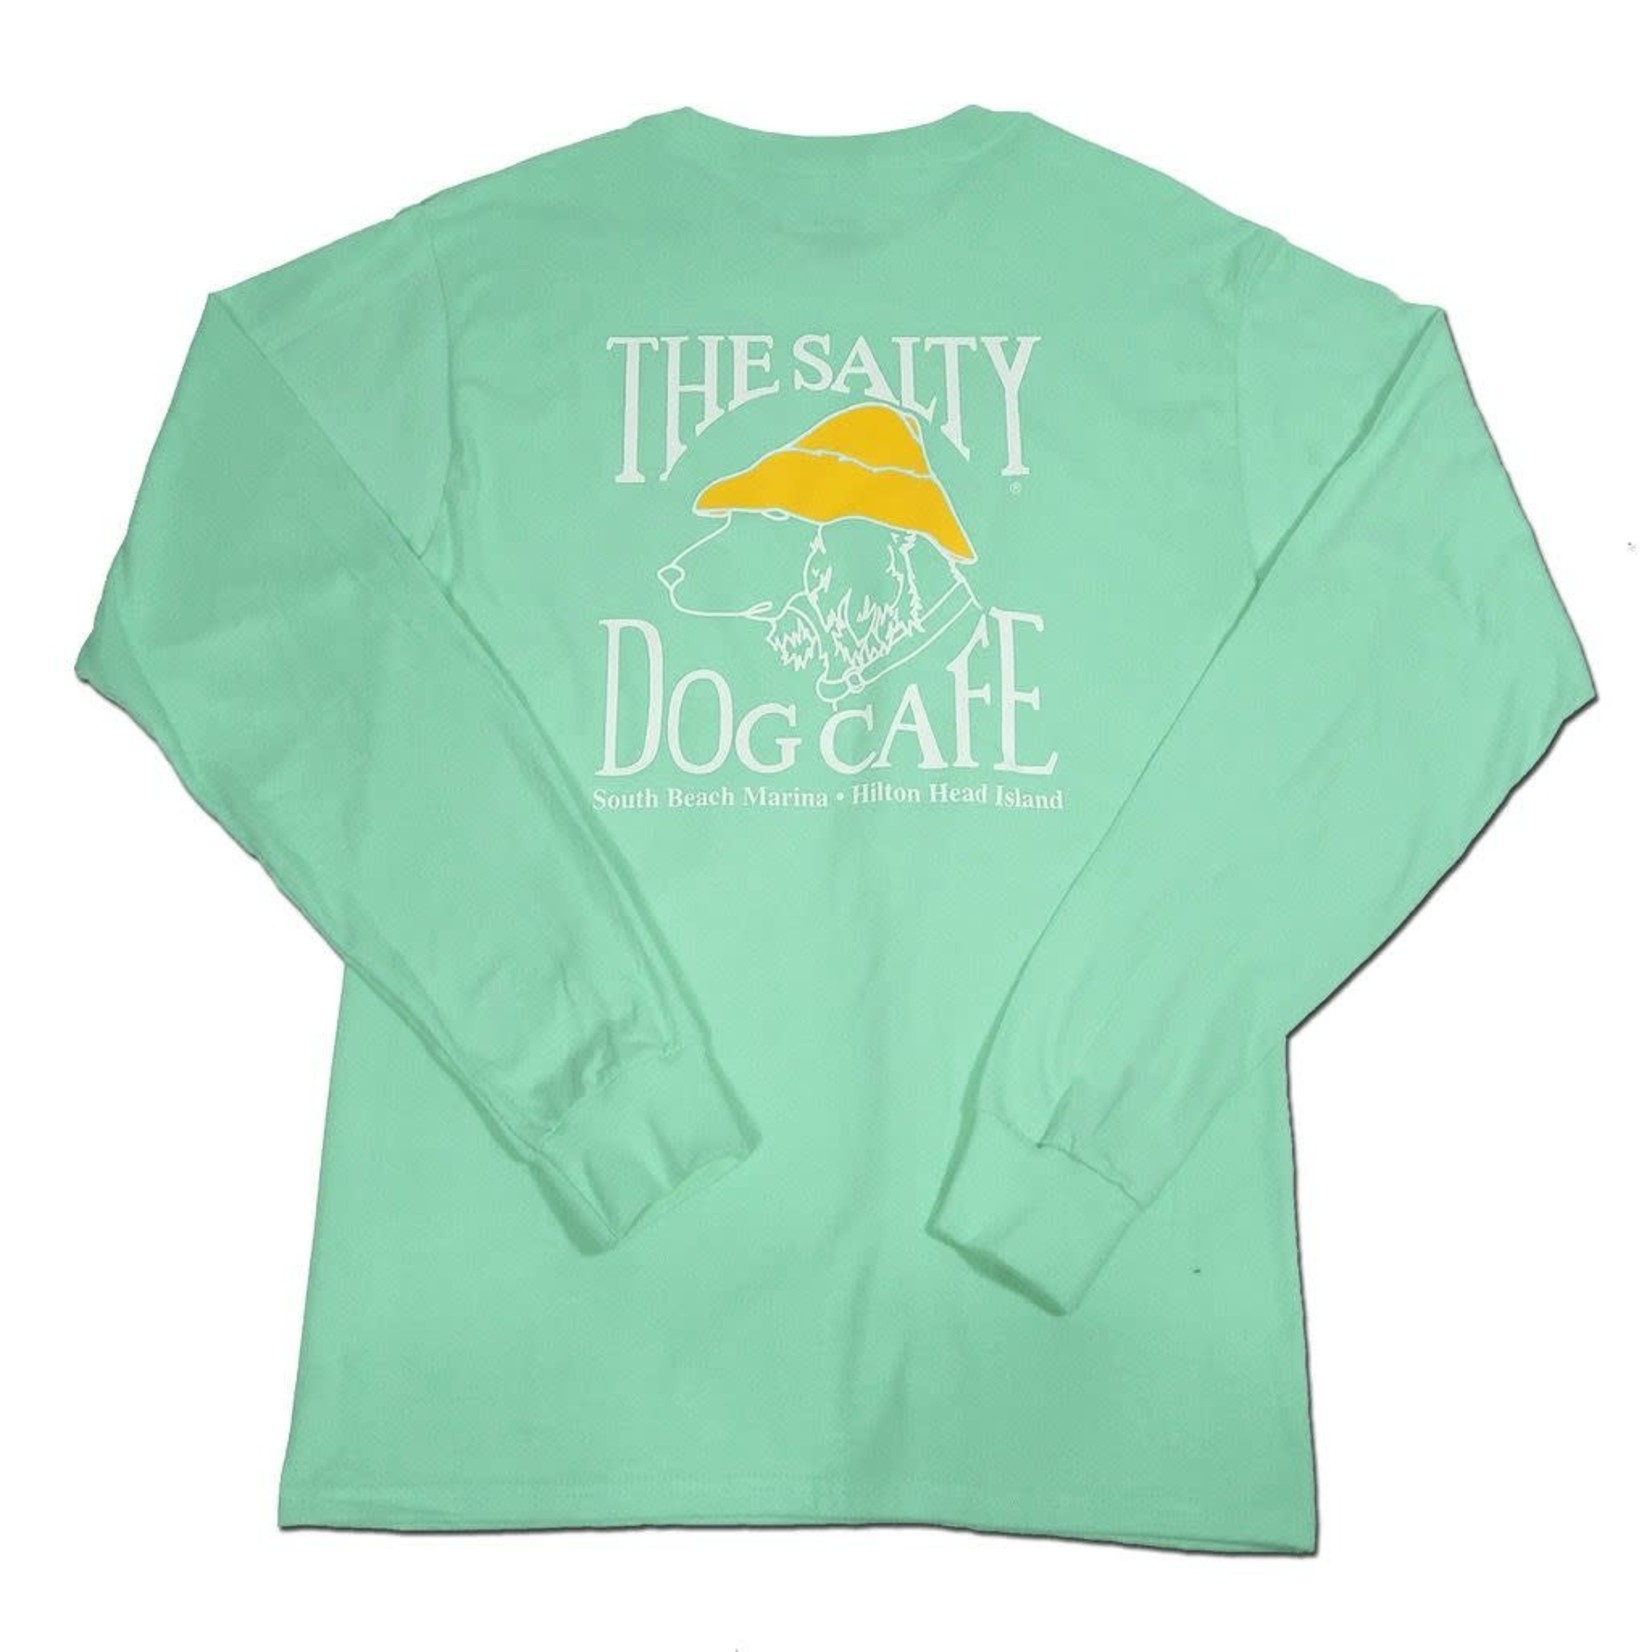 Hanes Beefy L/S Clean Mint